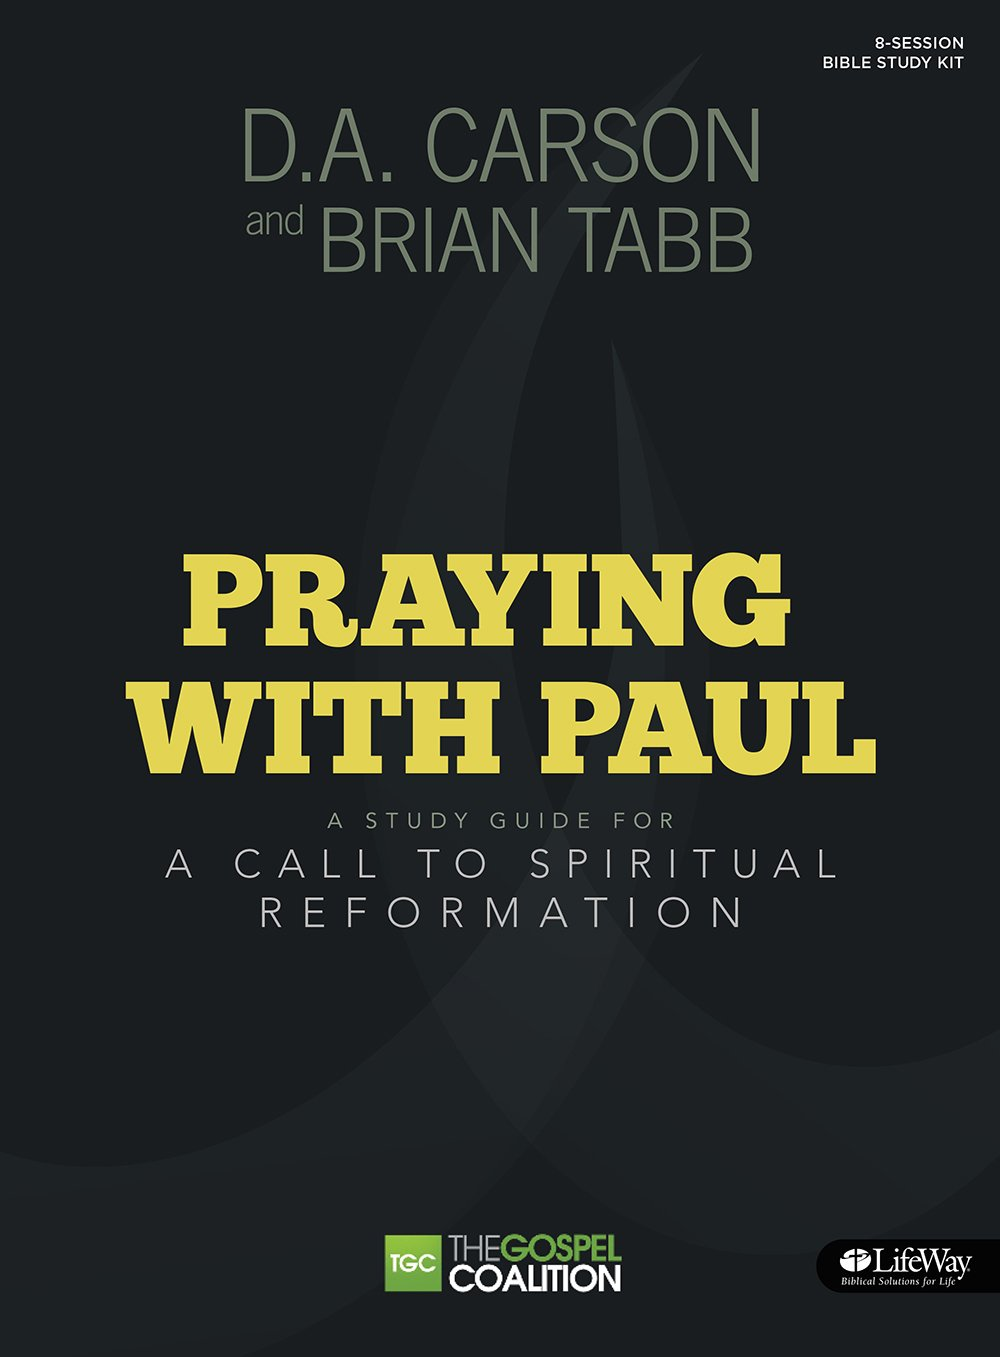 Praying With Paul: A Call to Spiritual Reformation (Gospel Coalition): D.  A. Carson, Brian J. Tabb: 9781430032137: Amazon.com: Books